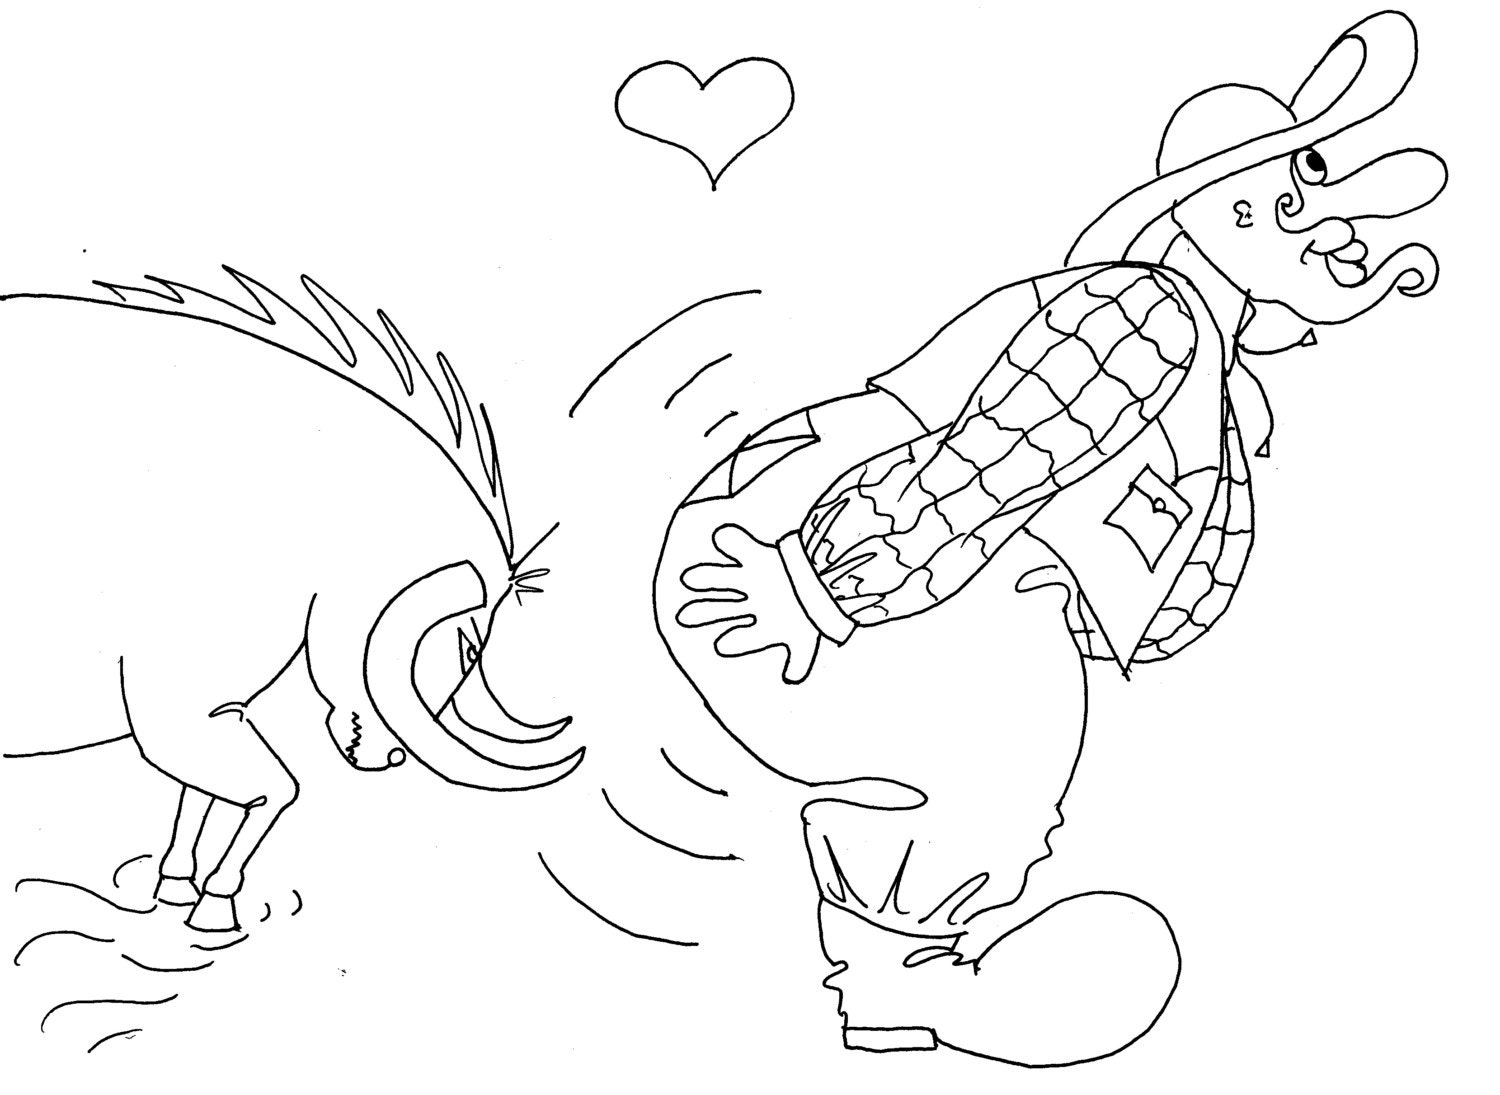 tempting fate funny coloring pages from the chubby art